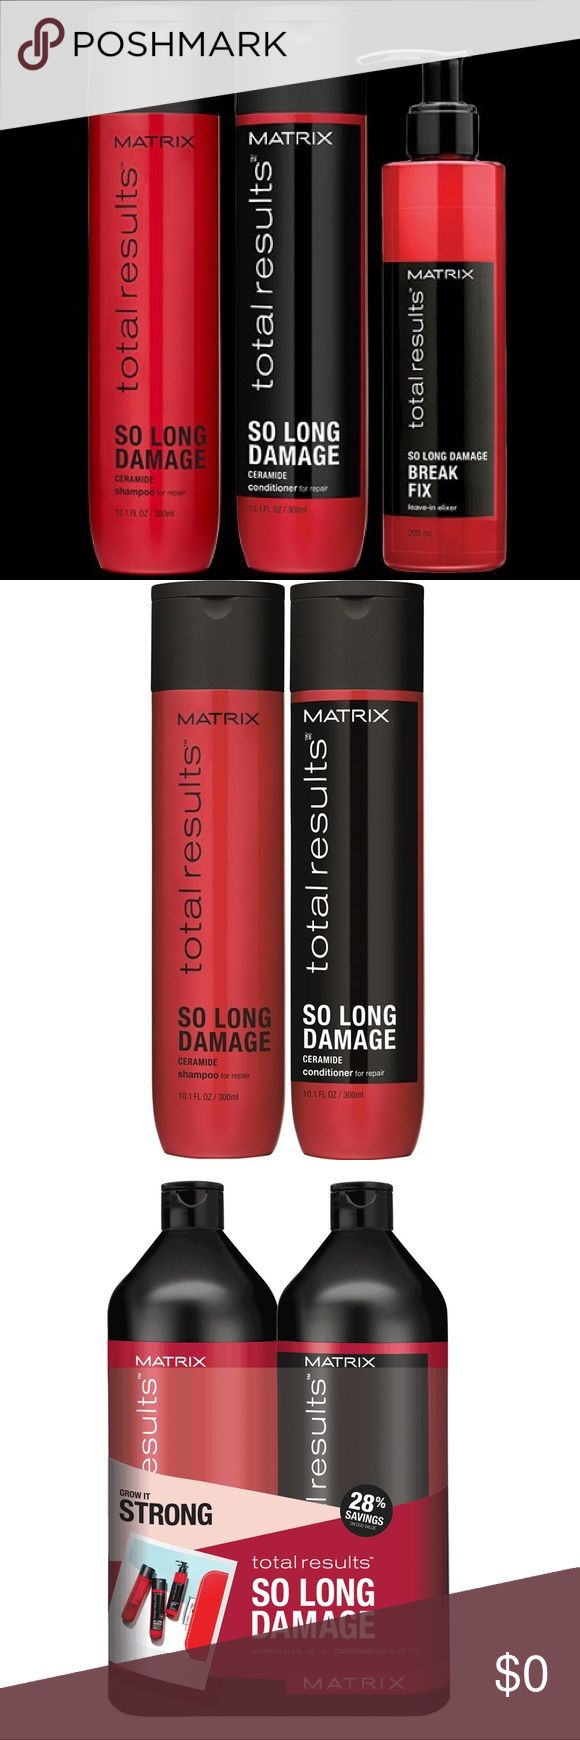 🌟 Matrix So Long Damaged Hair System enhances shine and helps boost hair strength to reduce breakage and allow hair to grow longer.                                                                     Leave-in Elixir 6.7 oz helps repair damage for totally strong hair when used together as a system with Matrix Shampoo and Conditioner.                                                                   Malibu swimmers hair and hard water packets Makeup